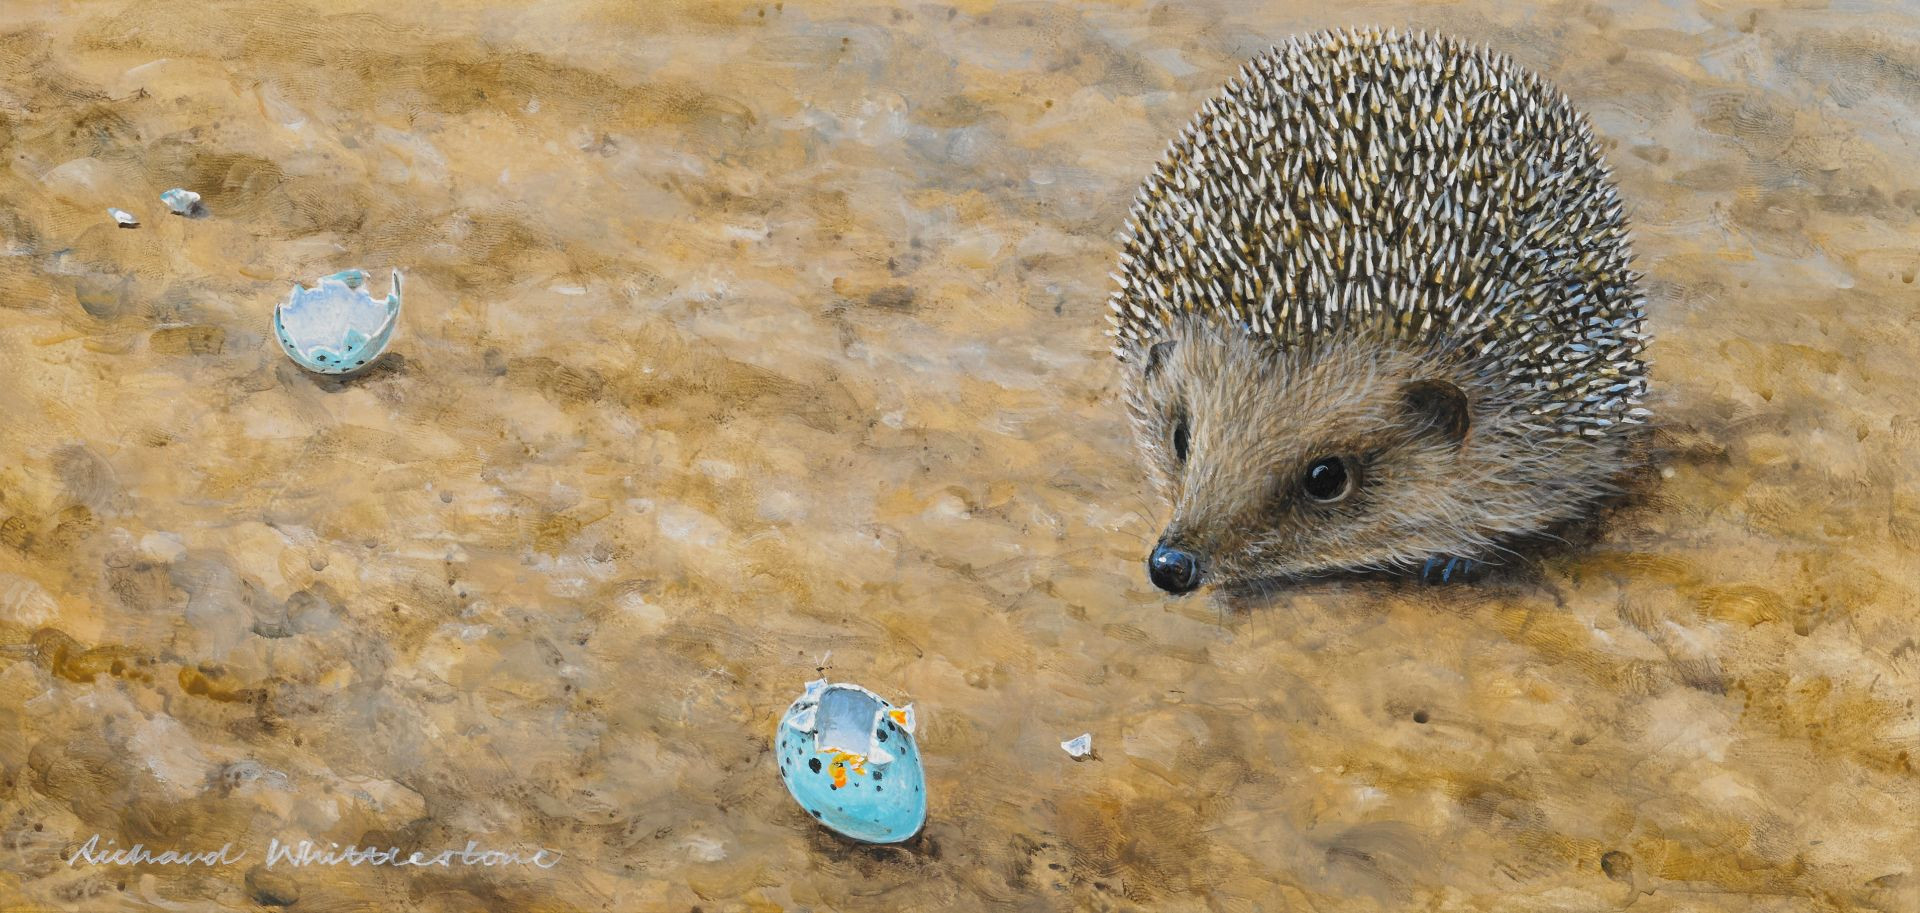 Richard-Whittlestone-Originals-Hedgehog